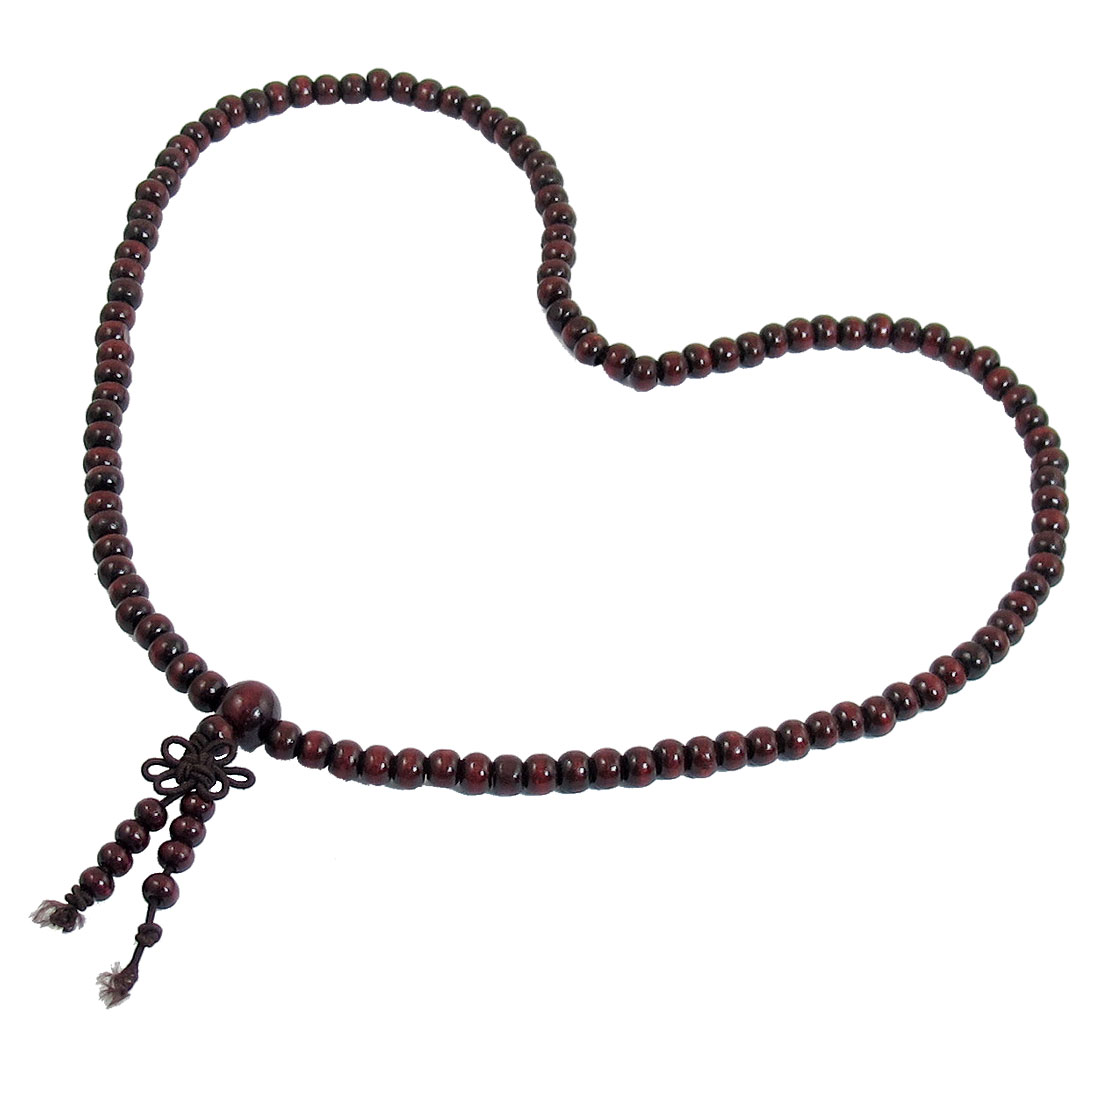 Dark Brown Sandalwood Prayer Beads Buddha Buddhist Mala Necklace 48cm